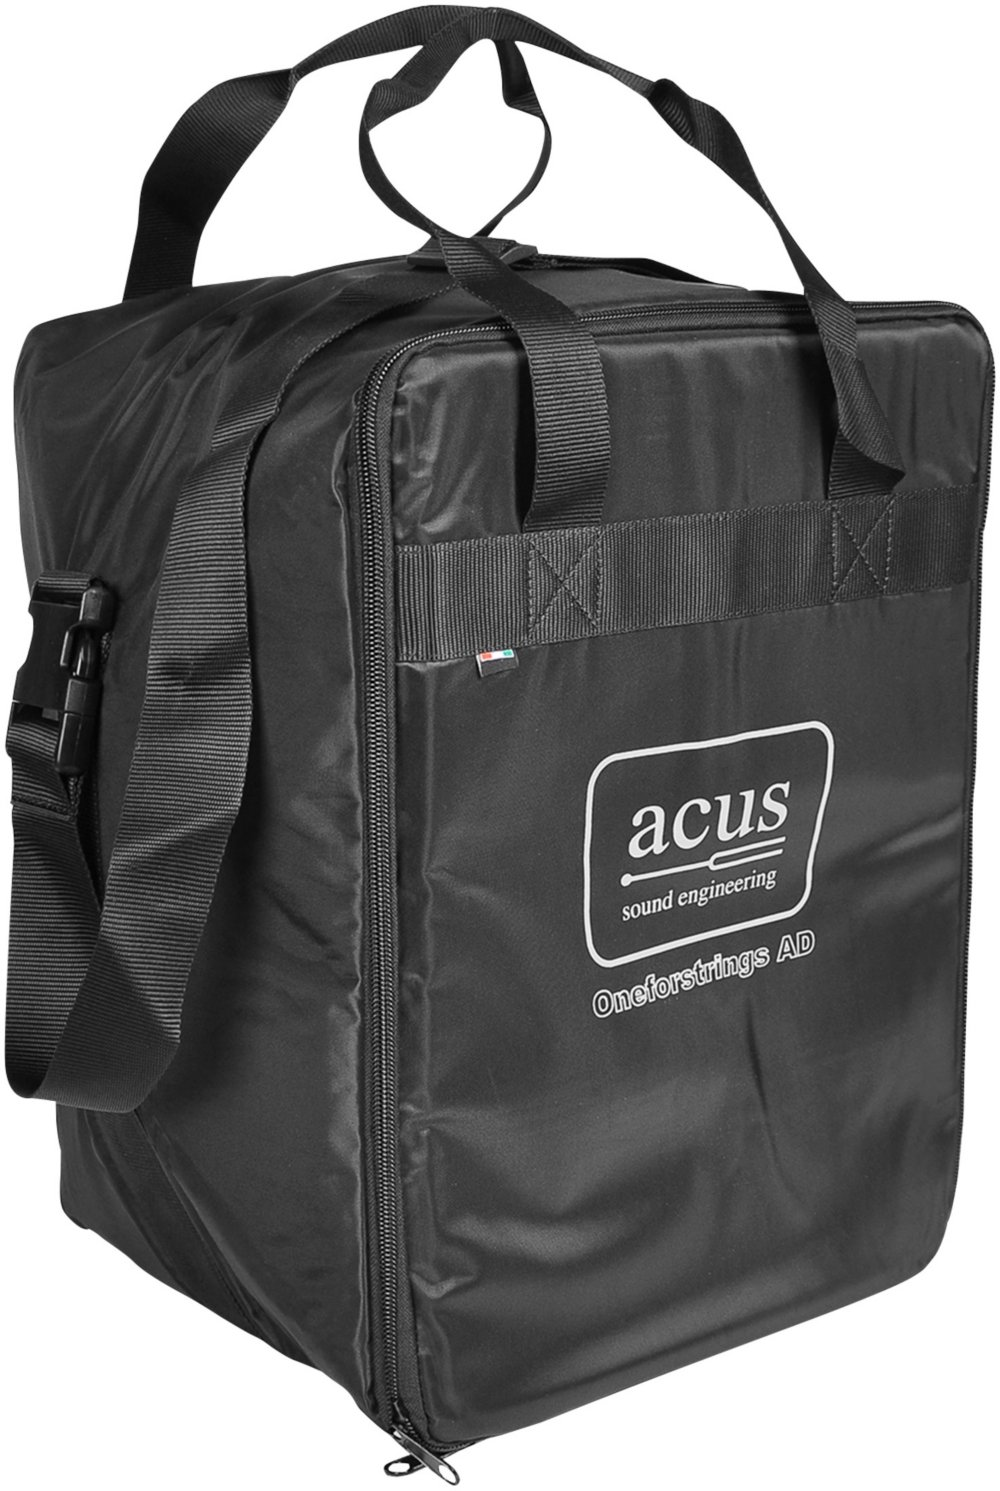 Acus One for Strings AD Bag